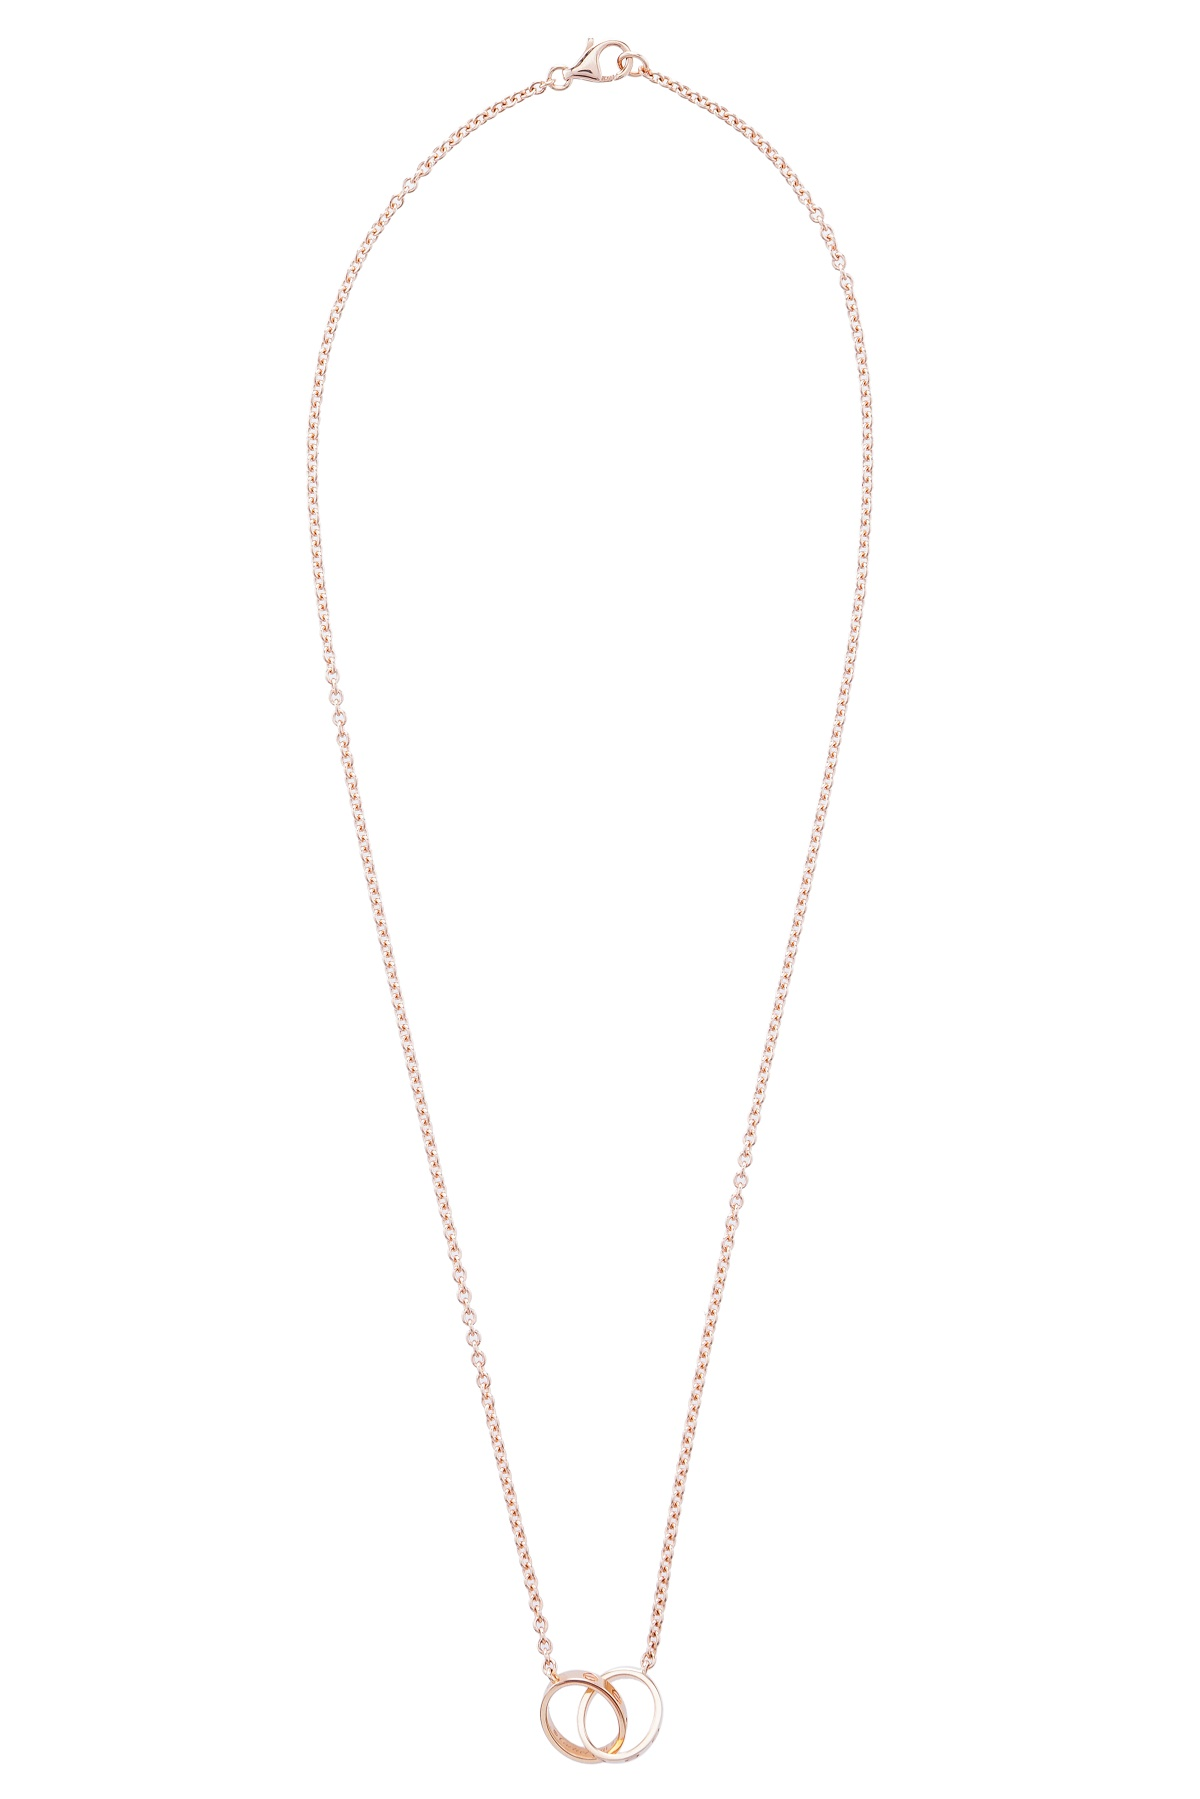 Cartier 750 Pink Gold Love Necklace- AED 7031- Reebonz.ae-2